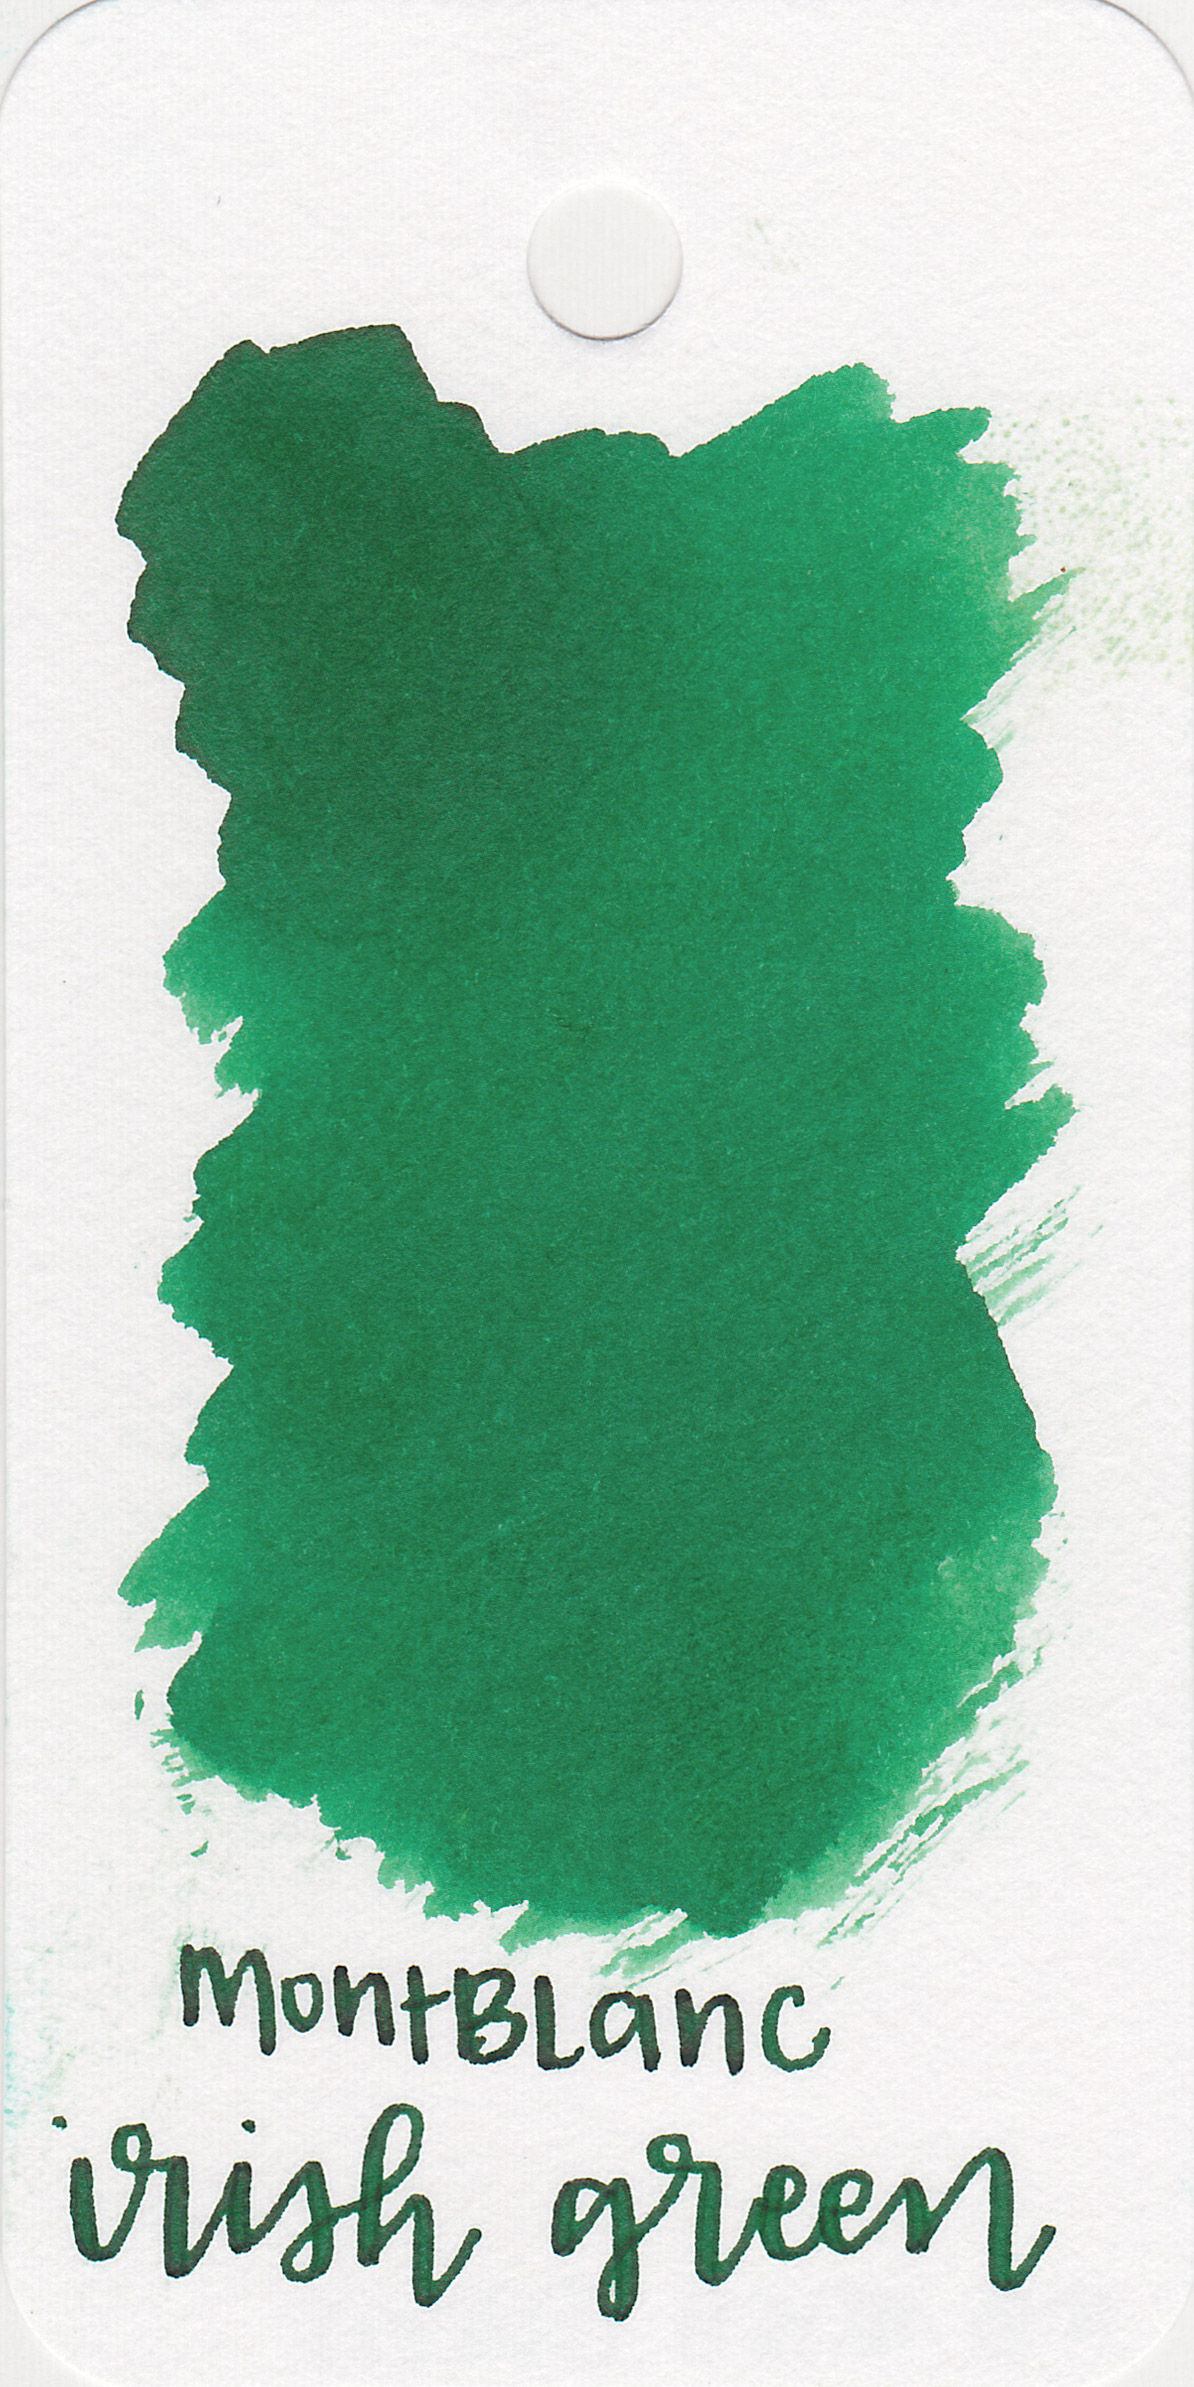 The color: - Irish Green is a beautiful medium green.